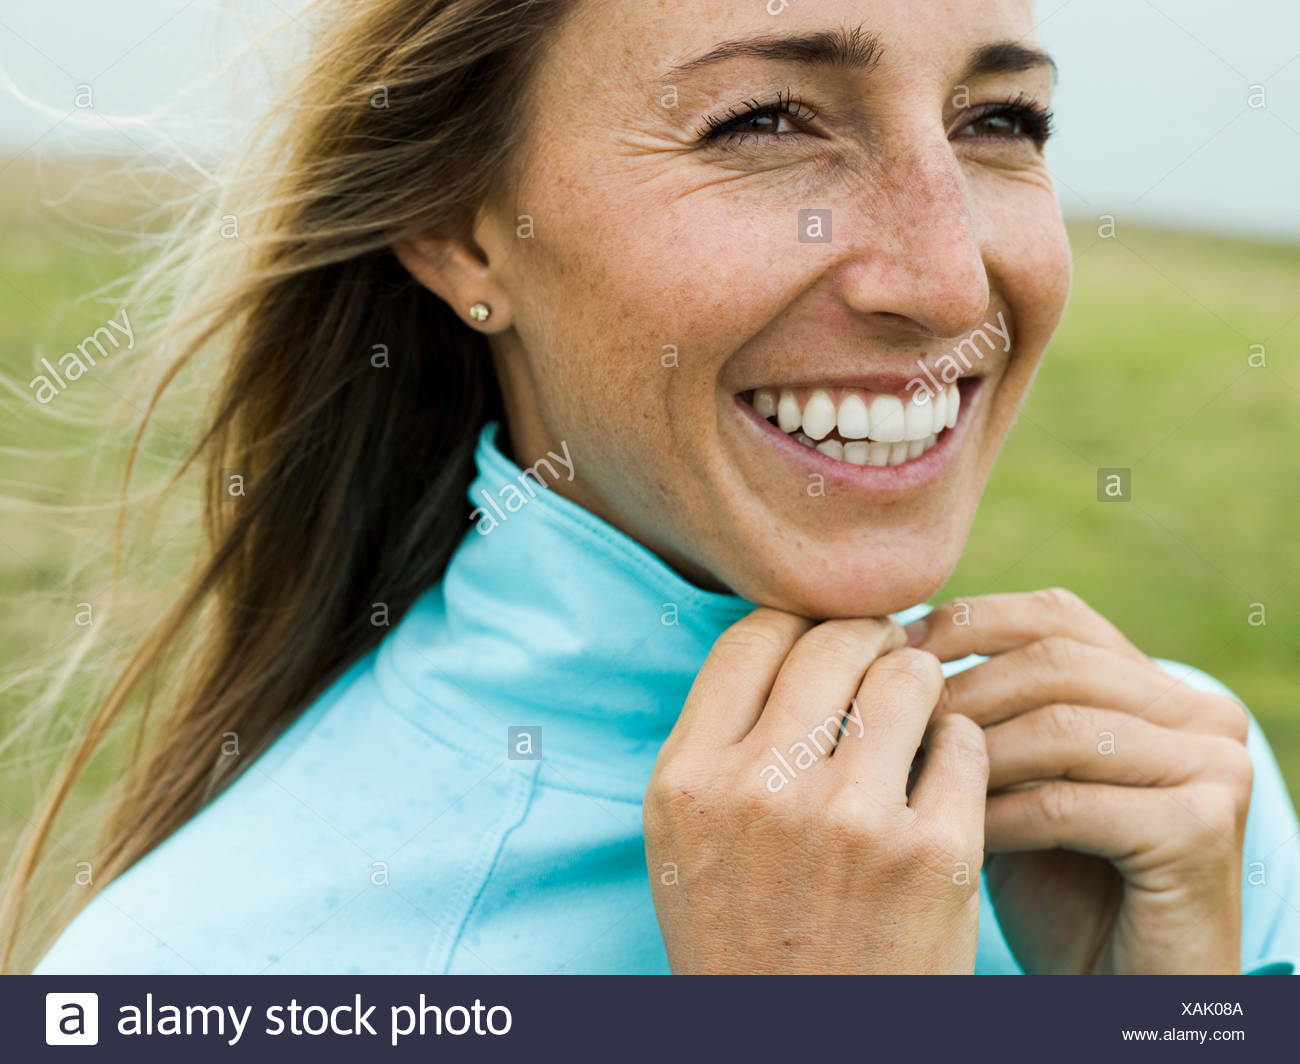 Portrait of a smiling young woman jogger - Stock Image